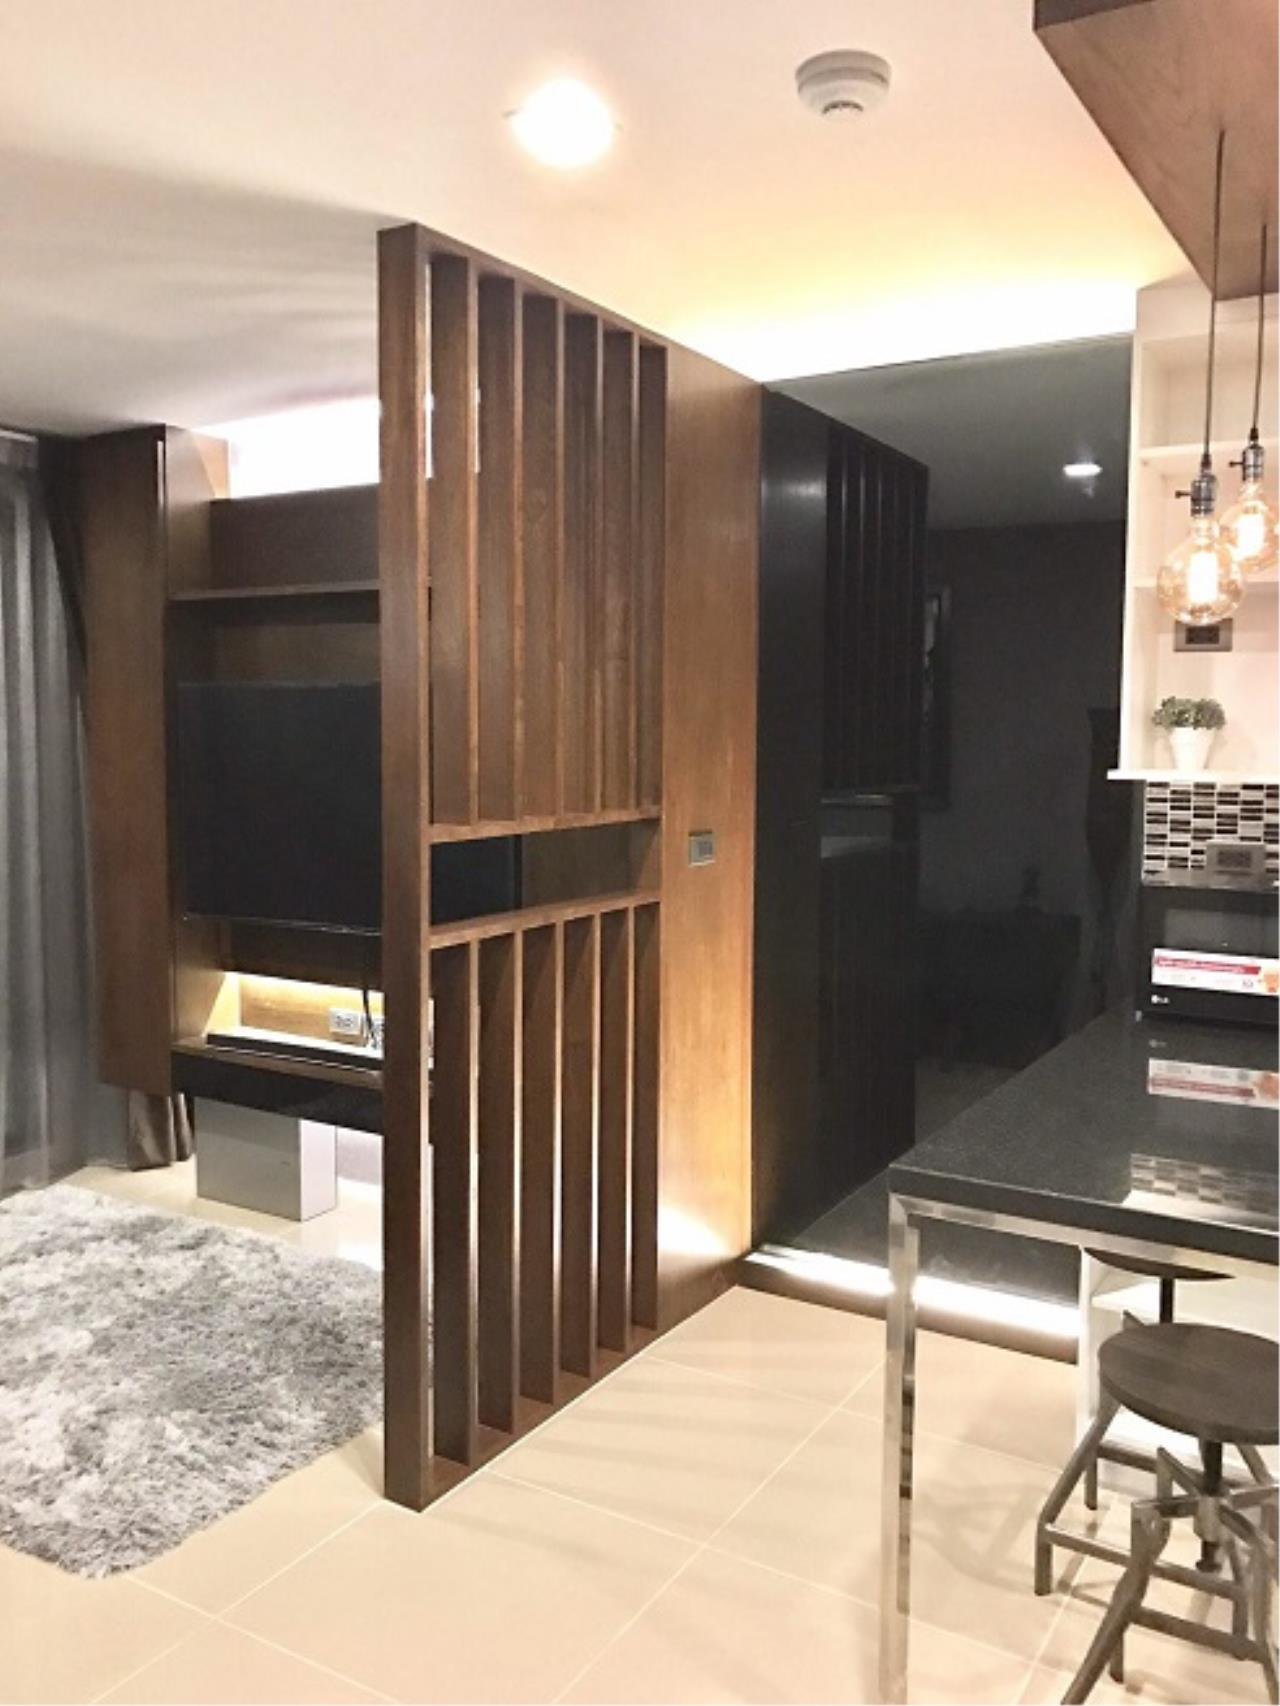 RE/MAX All Star Realty Agency's Mirage Sukhumvit one bed condo for sale/rent (BTS Asoke / MRT Sukhumvit) 7